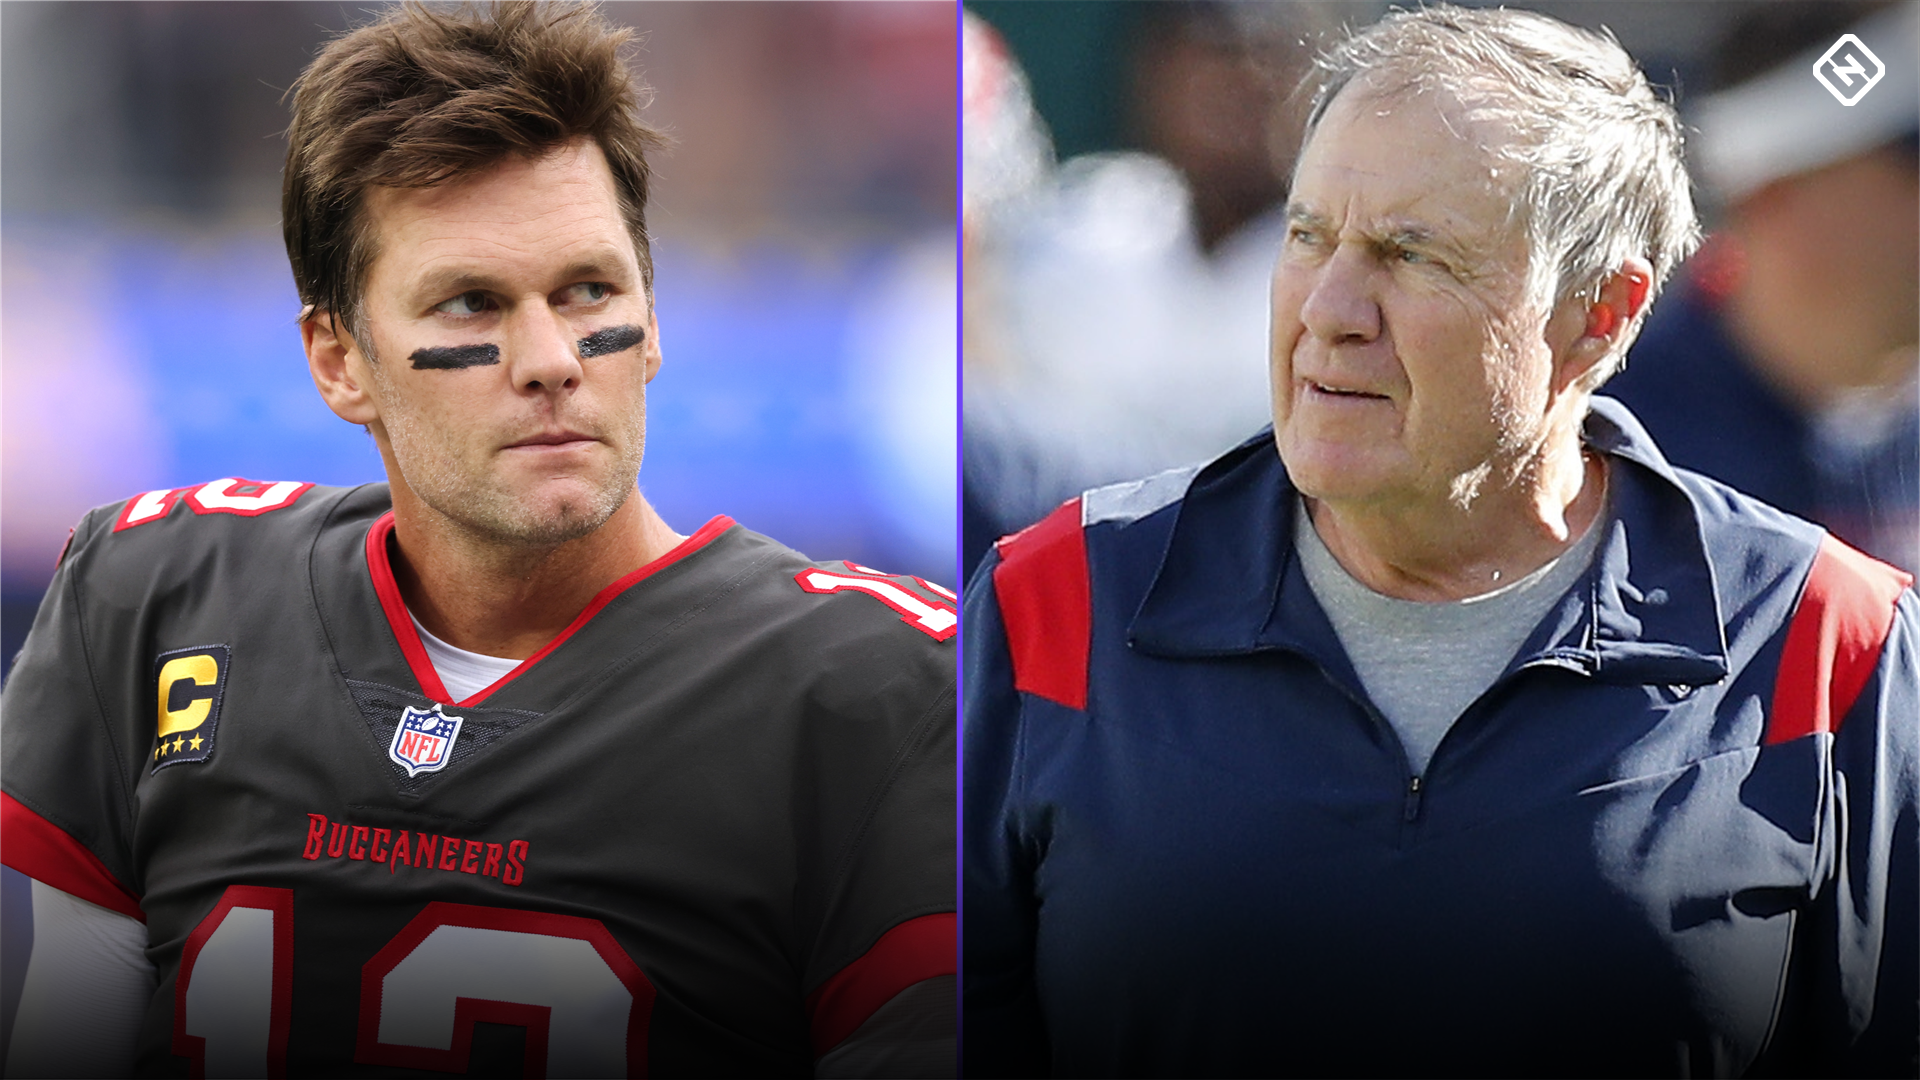 NFL Twitter has mixed reactions to NBC's Tom Brady, Bill Belichick promo featuring Adele